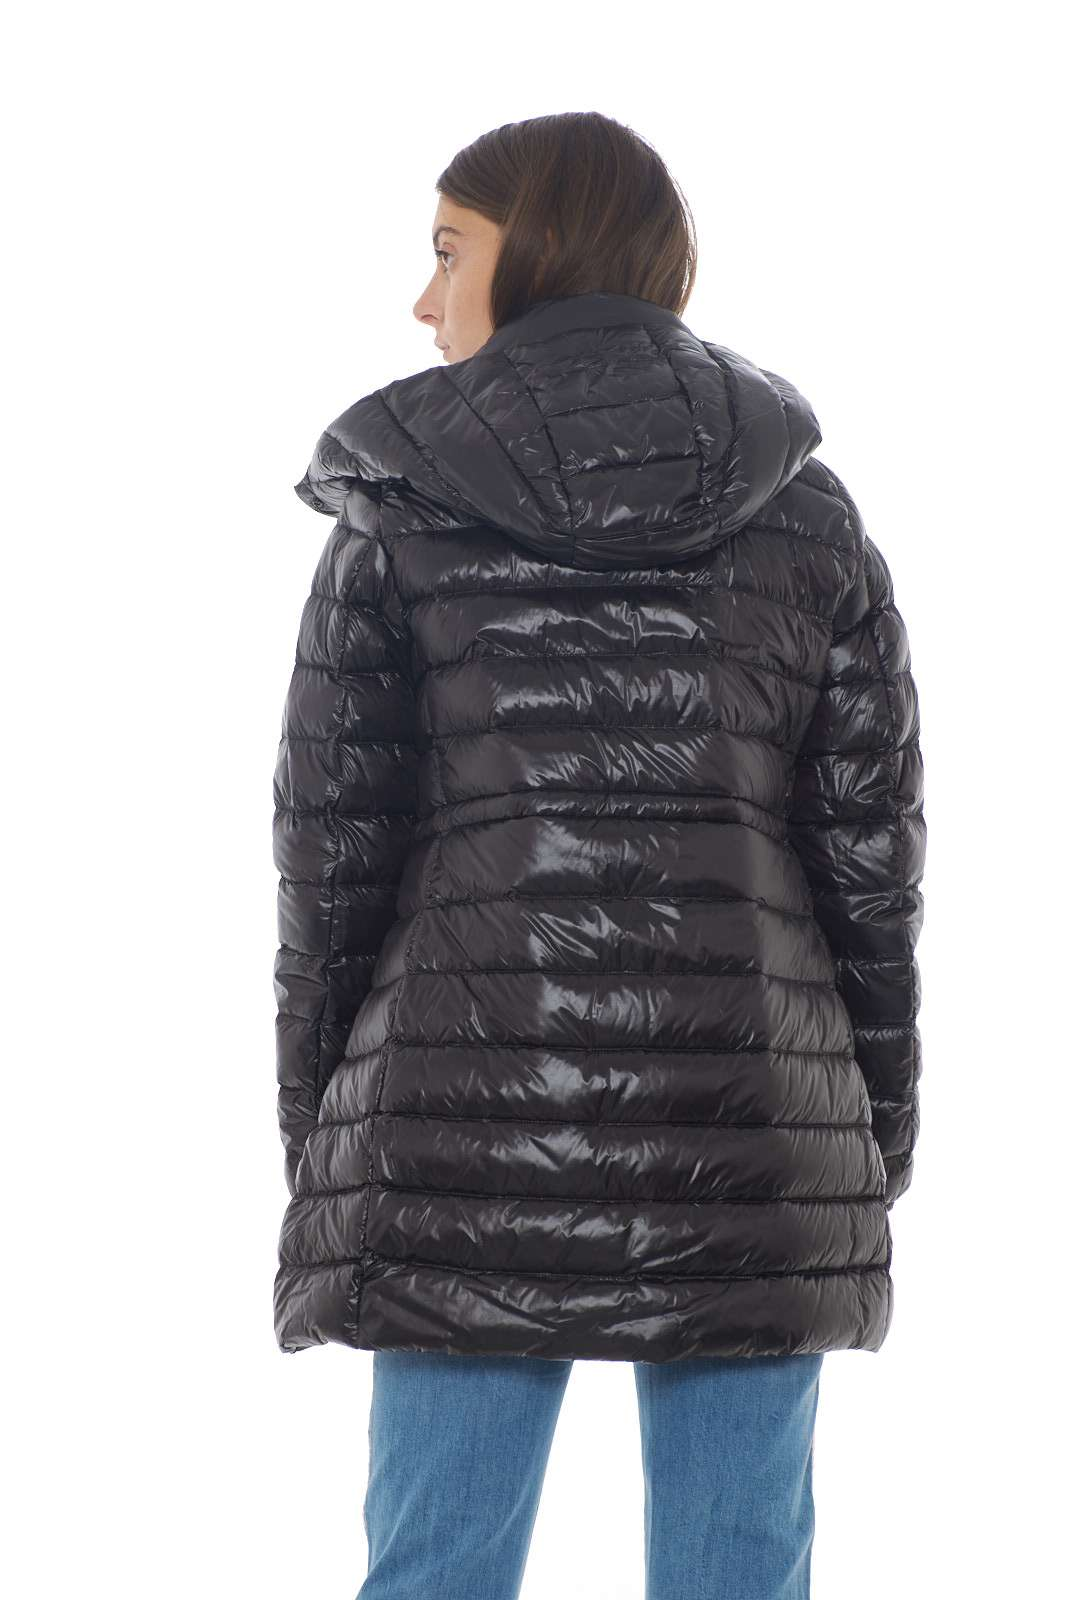 https://www.parmax.com/media/catalog/product/a/i/AI-outlet_parmax-parka-donna-Woolrich-WWCPS2785-G.jpg